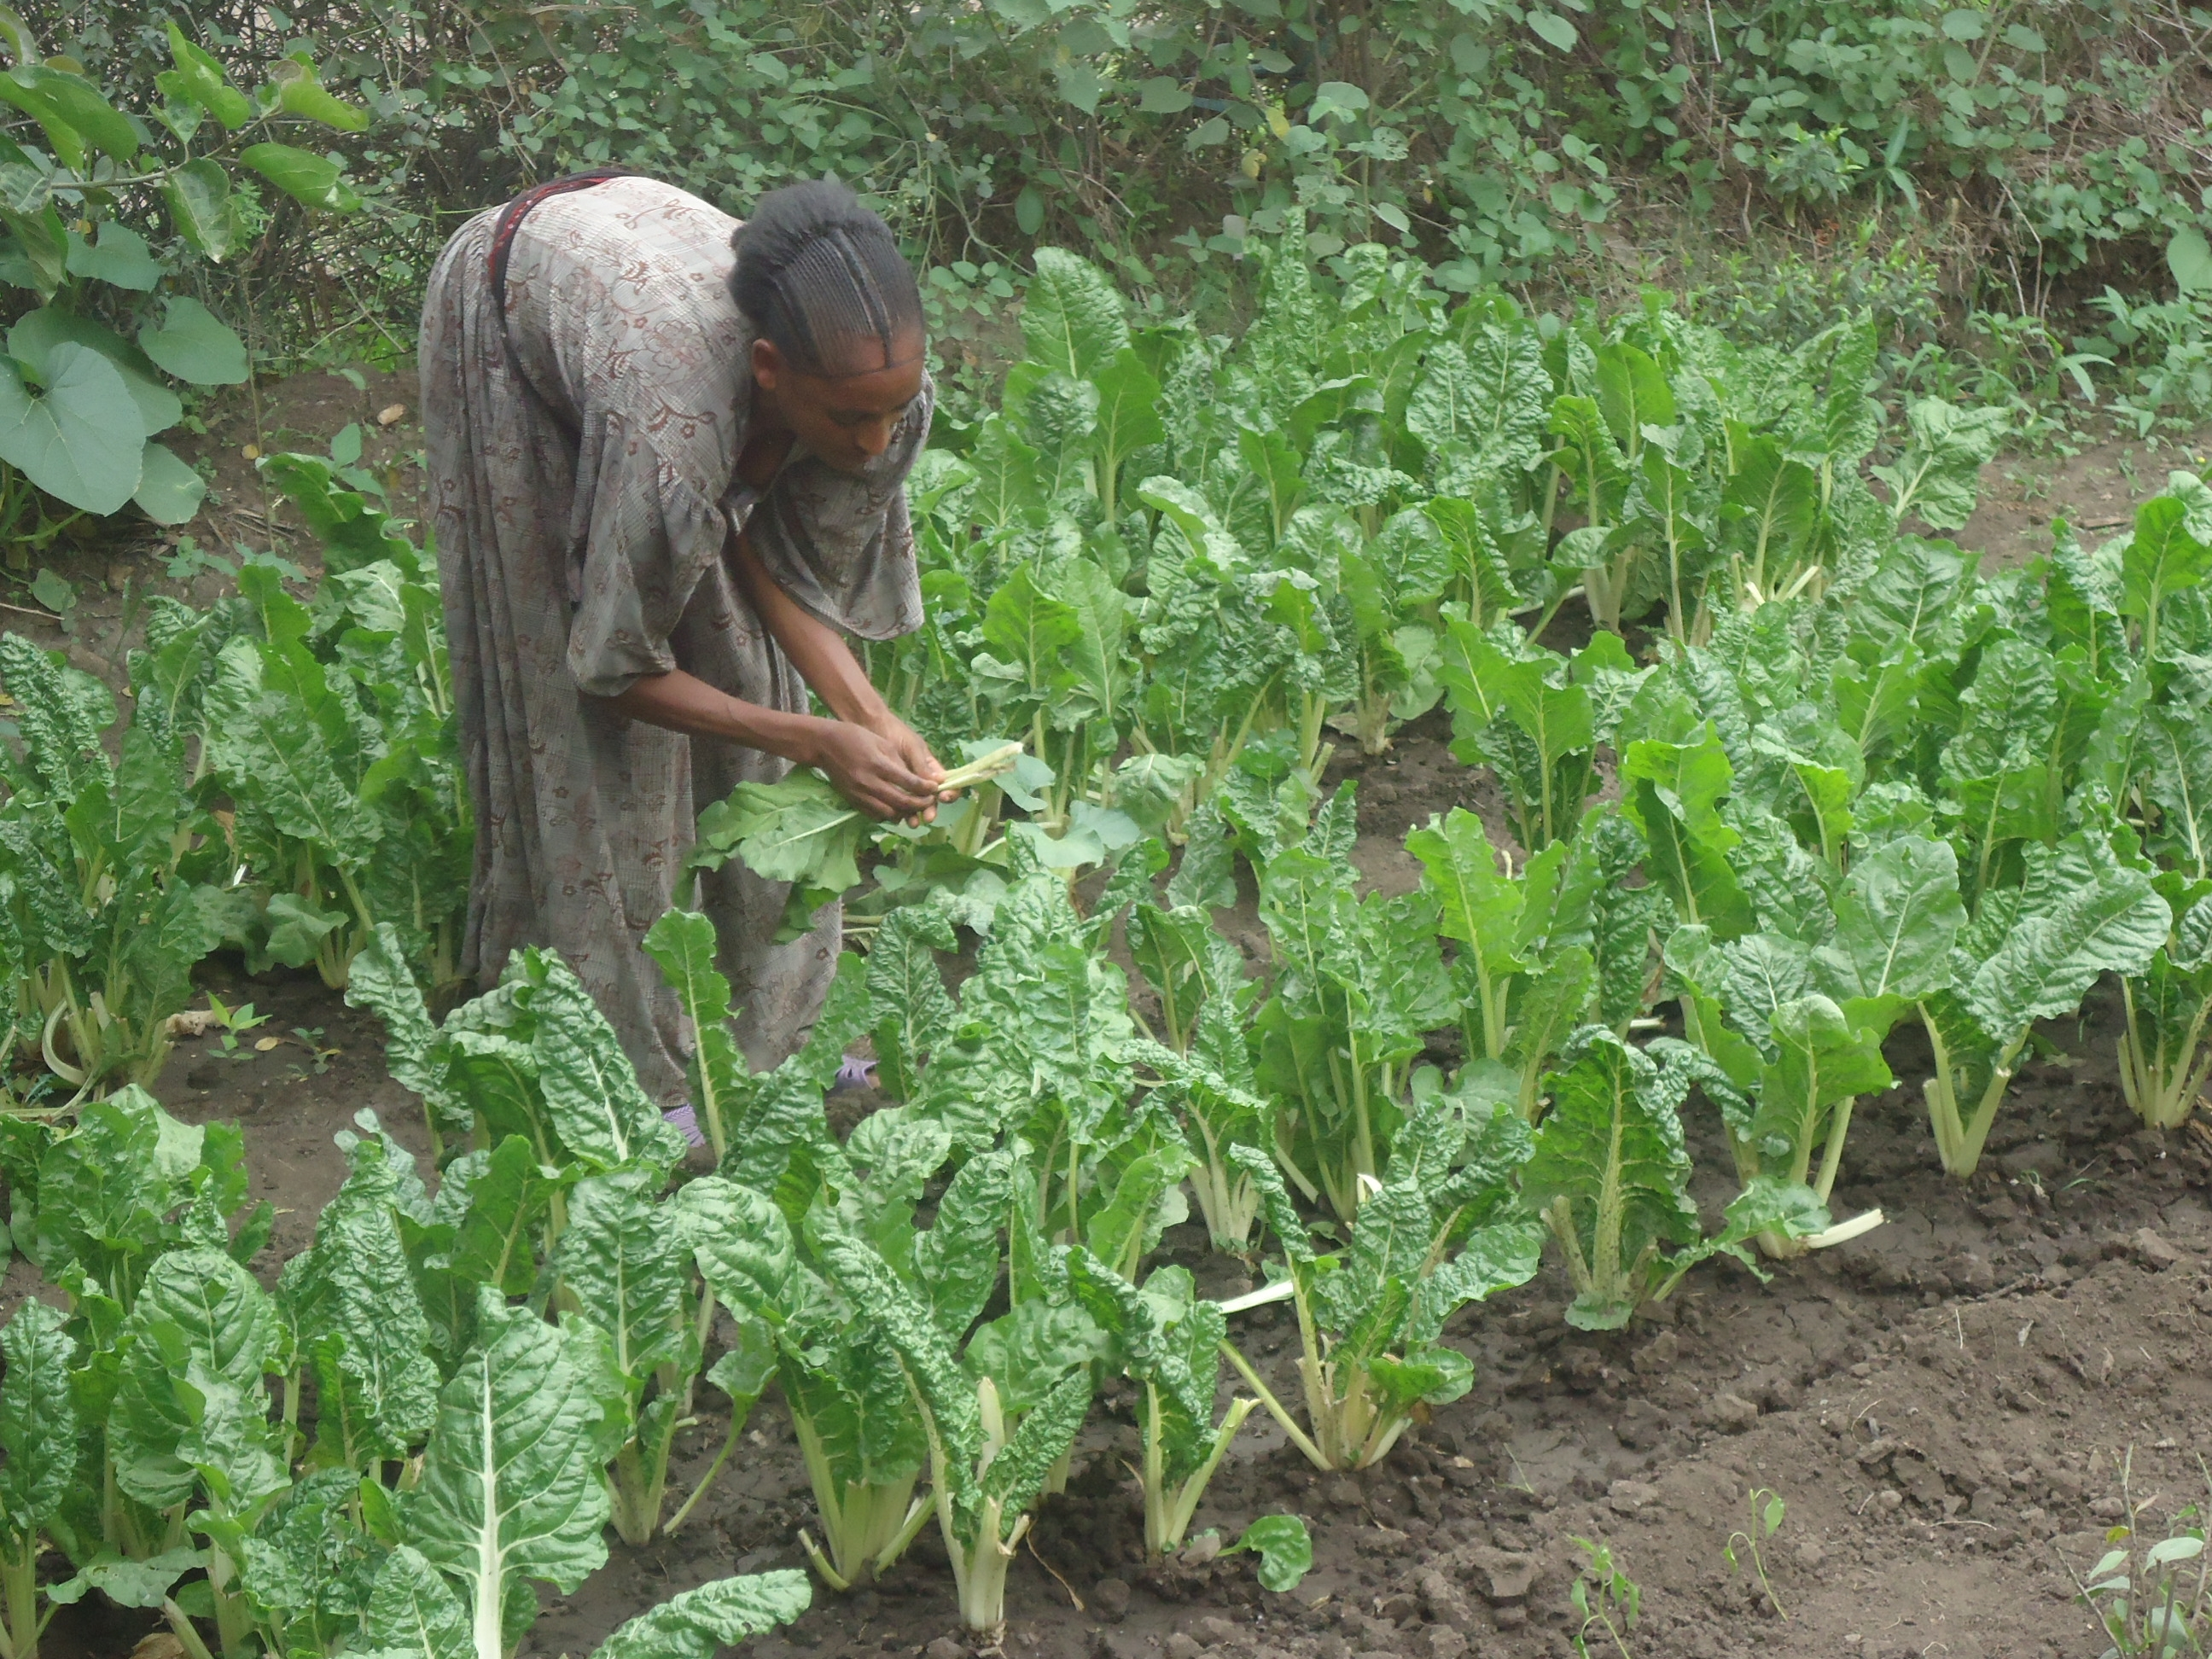 A woman picking vegetables in her vegetable plot